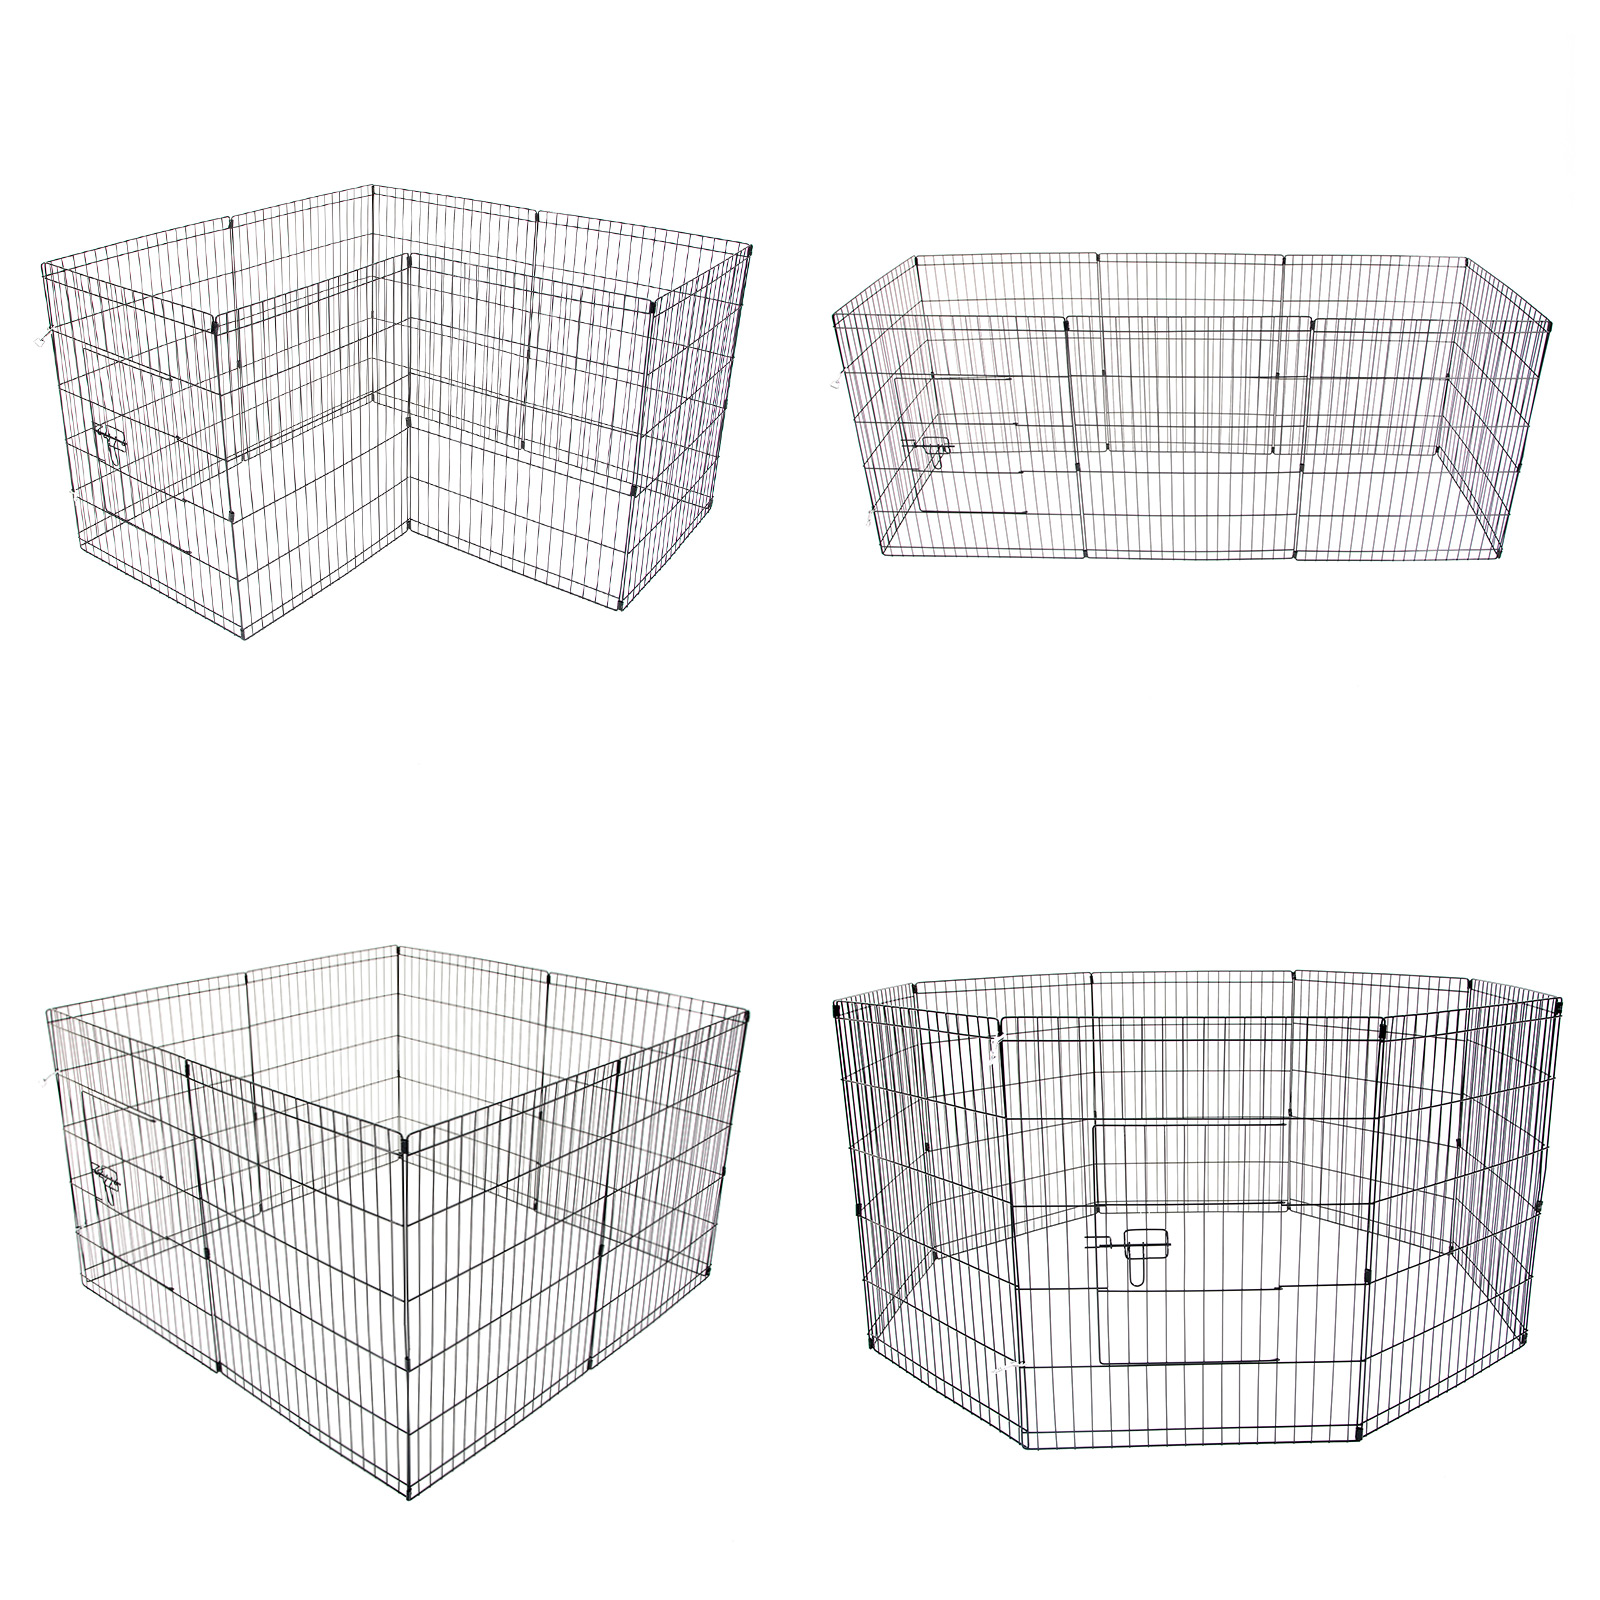 24 8 Panel Pet Playpen W Cover Portable Cage Fence